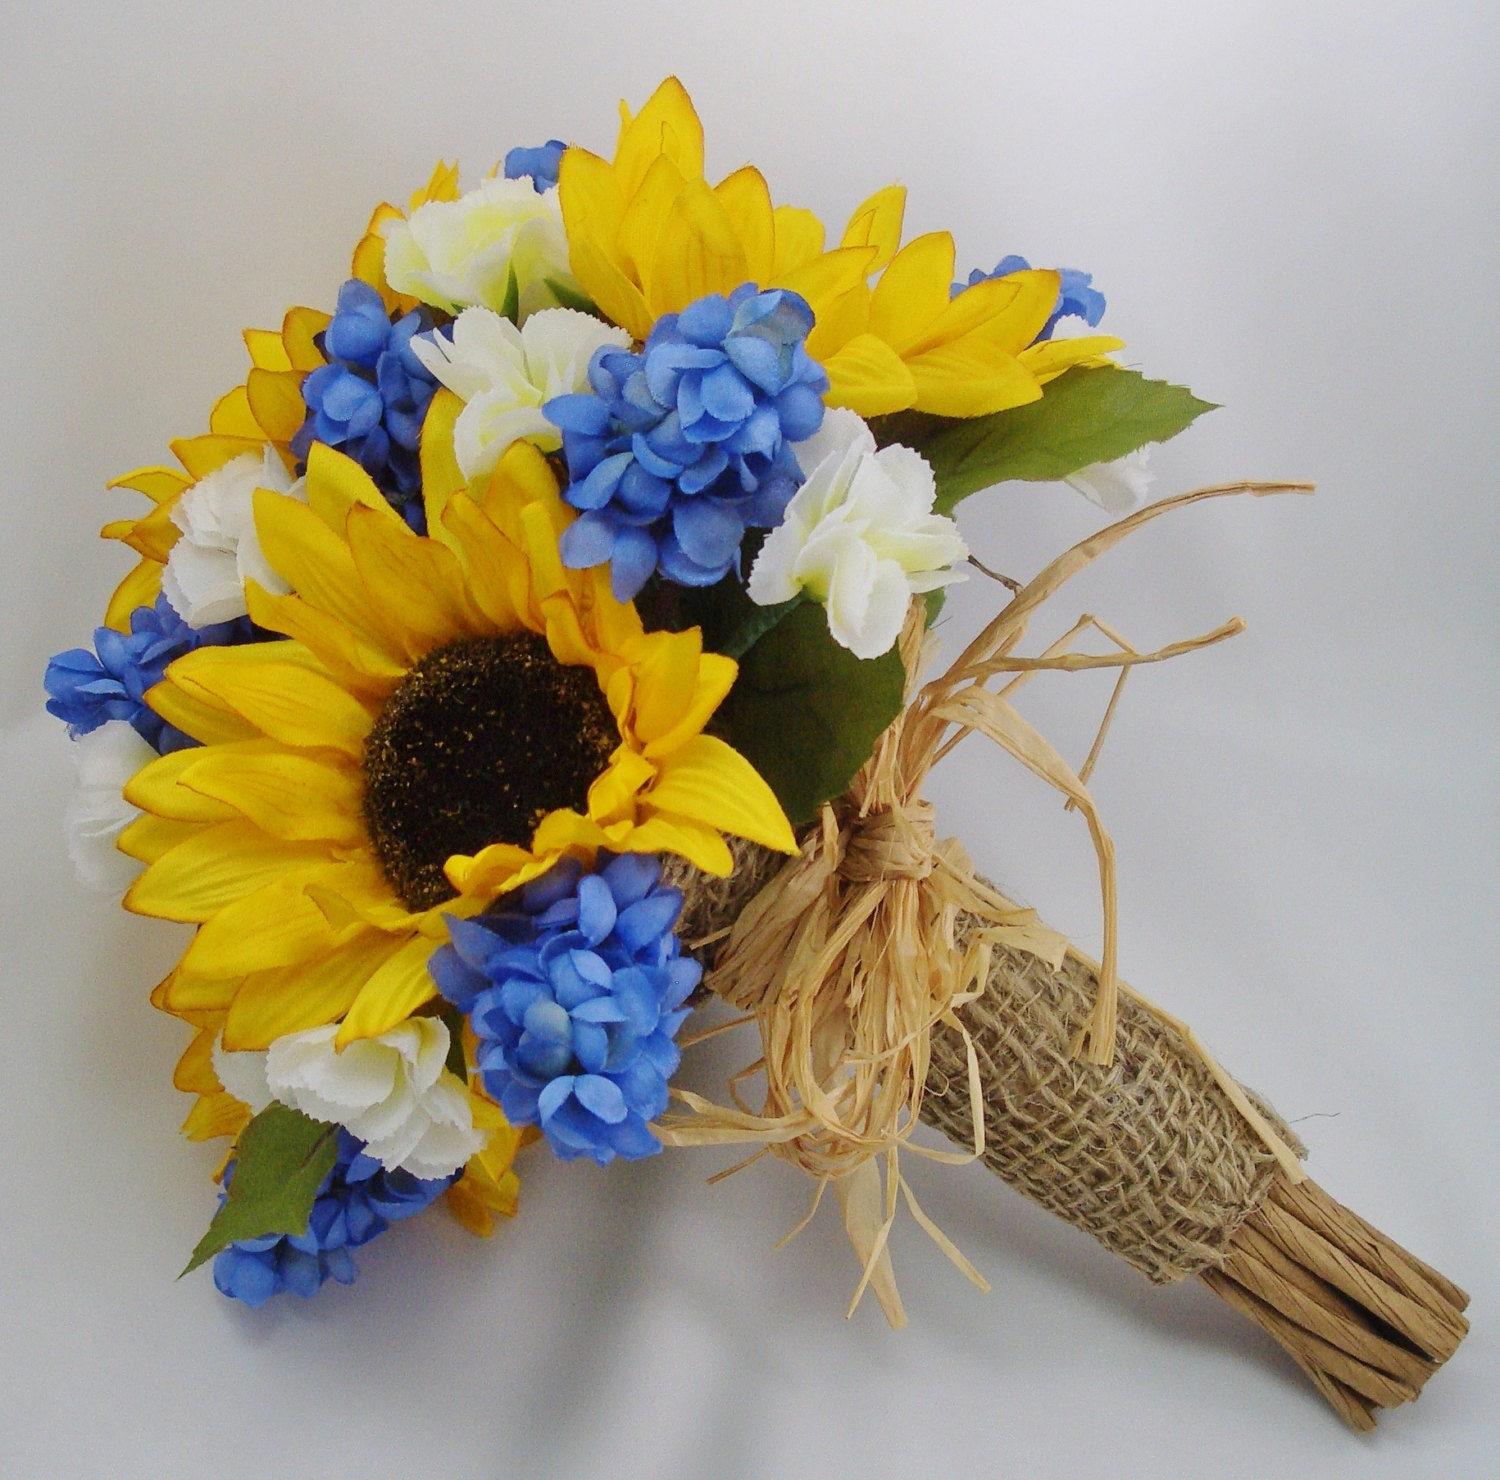 Bridesmaid Bouquets Sunflowers : Sunflower bridal bouquet fft original design by